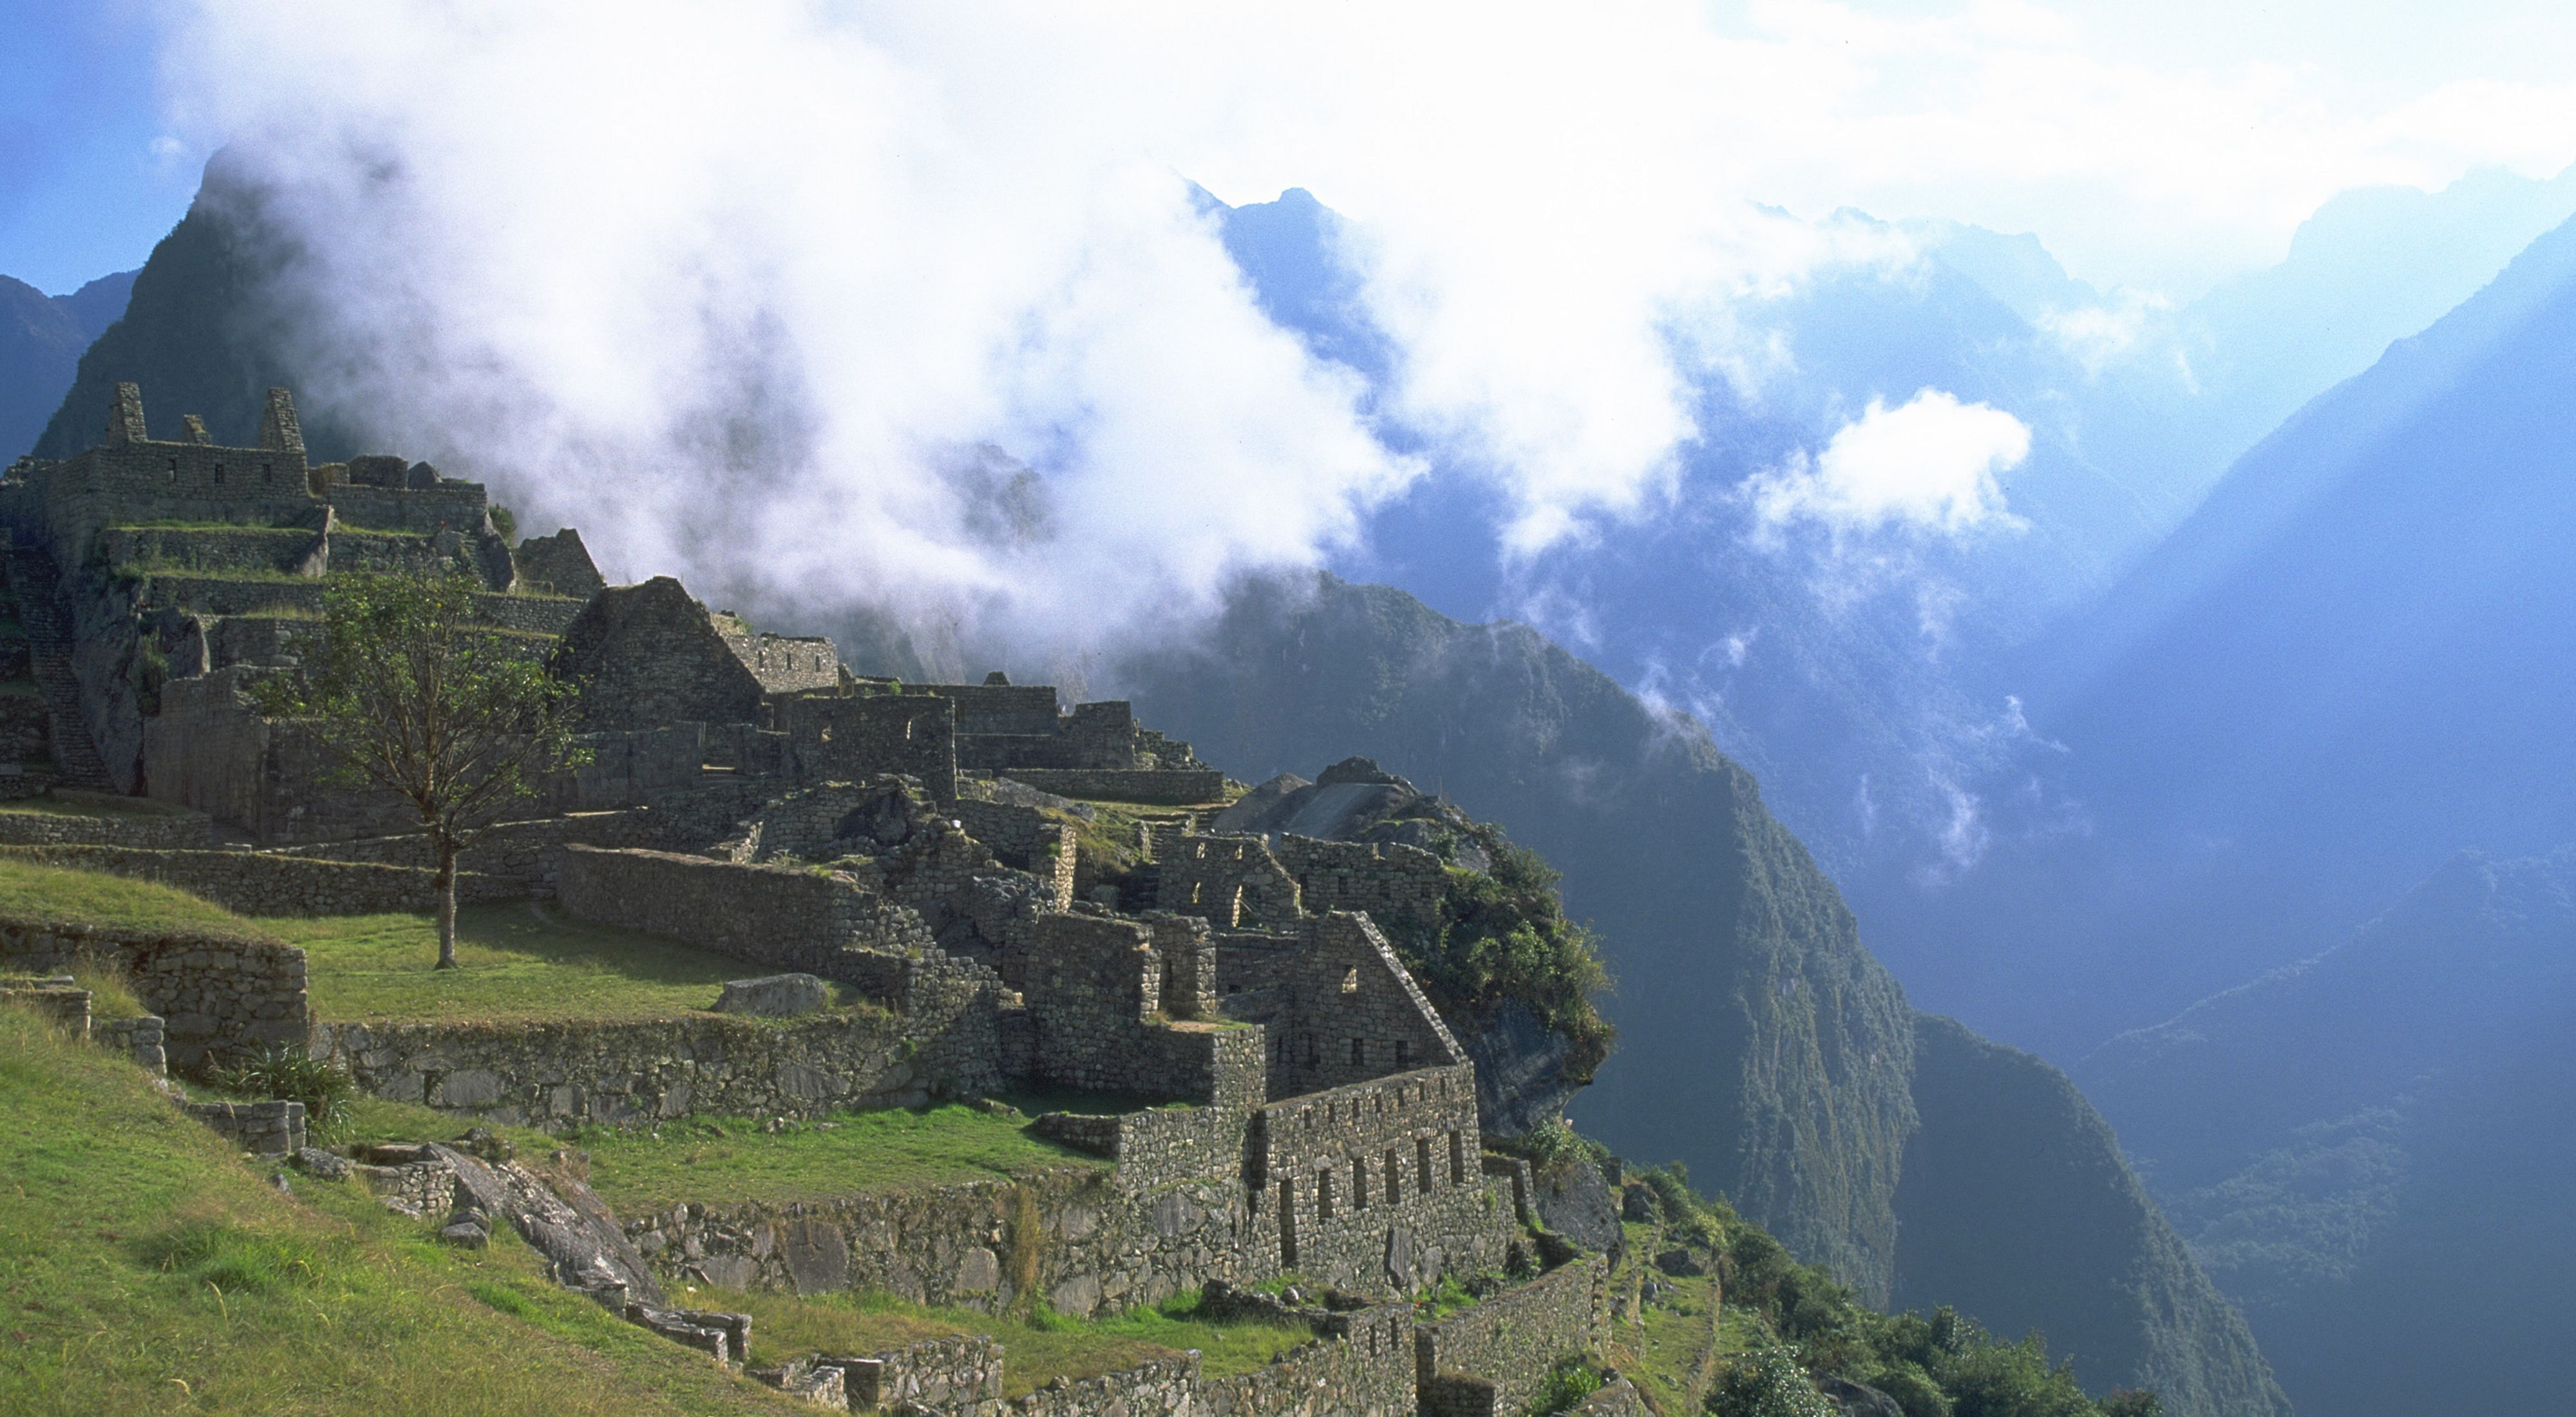 A view of the ancient Incan city of Machu Picchu with